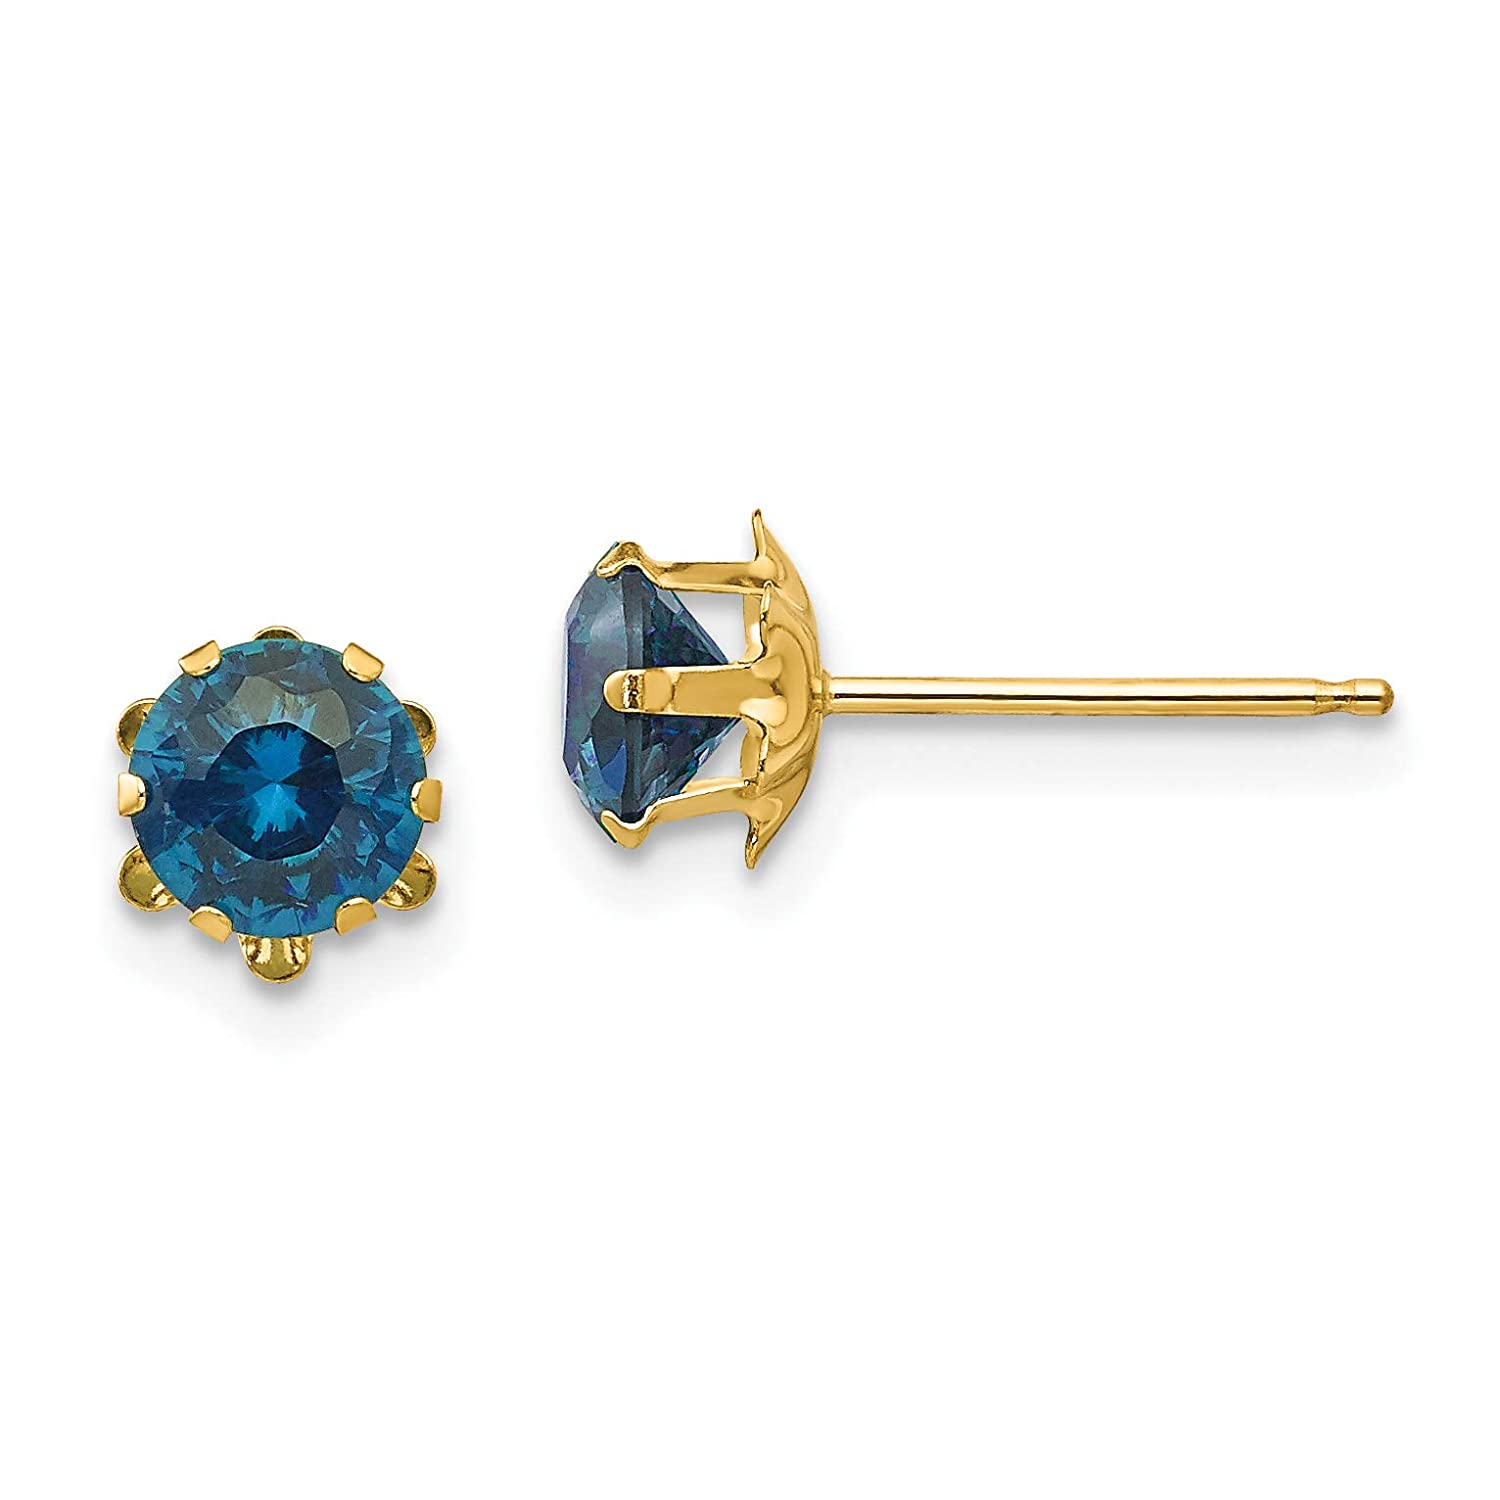 14K Yellow Gold Madi K Childrens 5 MM Synthetic December Birthstone Stud Earrings